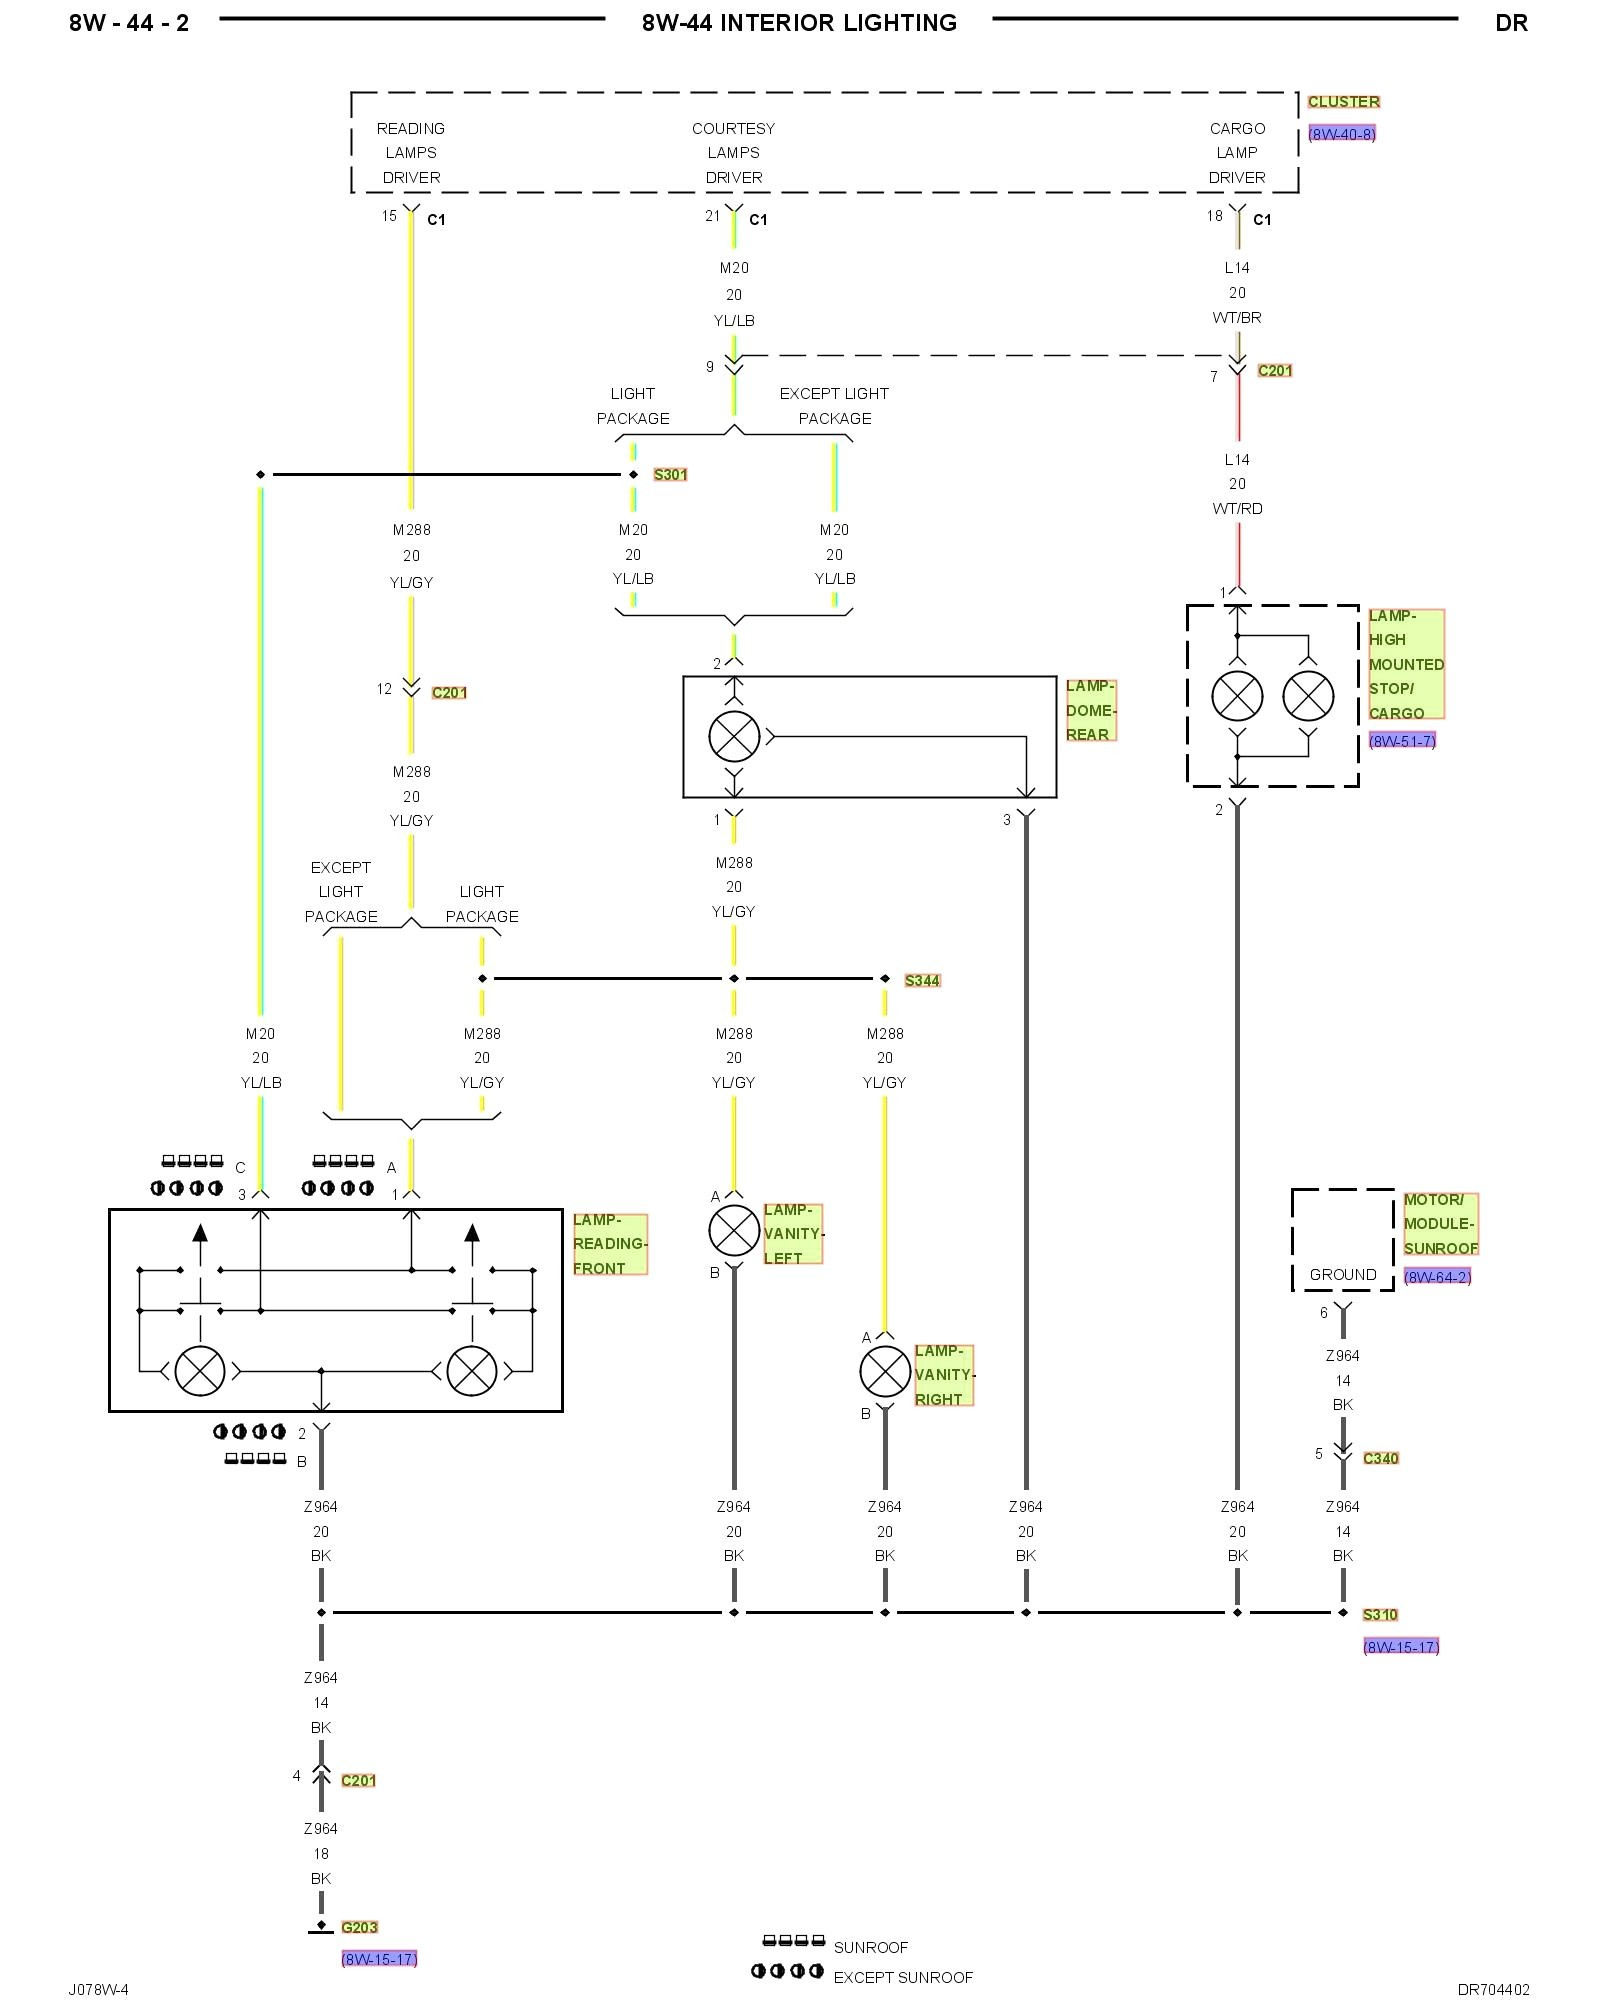 2003 dodge ram 1500 stereo wiring diagram wiring diagram 2000 dodge ram 1500 radio wiring diagram best of wiring diagram image 2004 dodge ram 1500 asfbconference2016 Choice Image